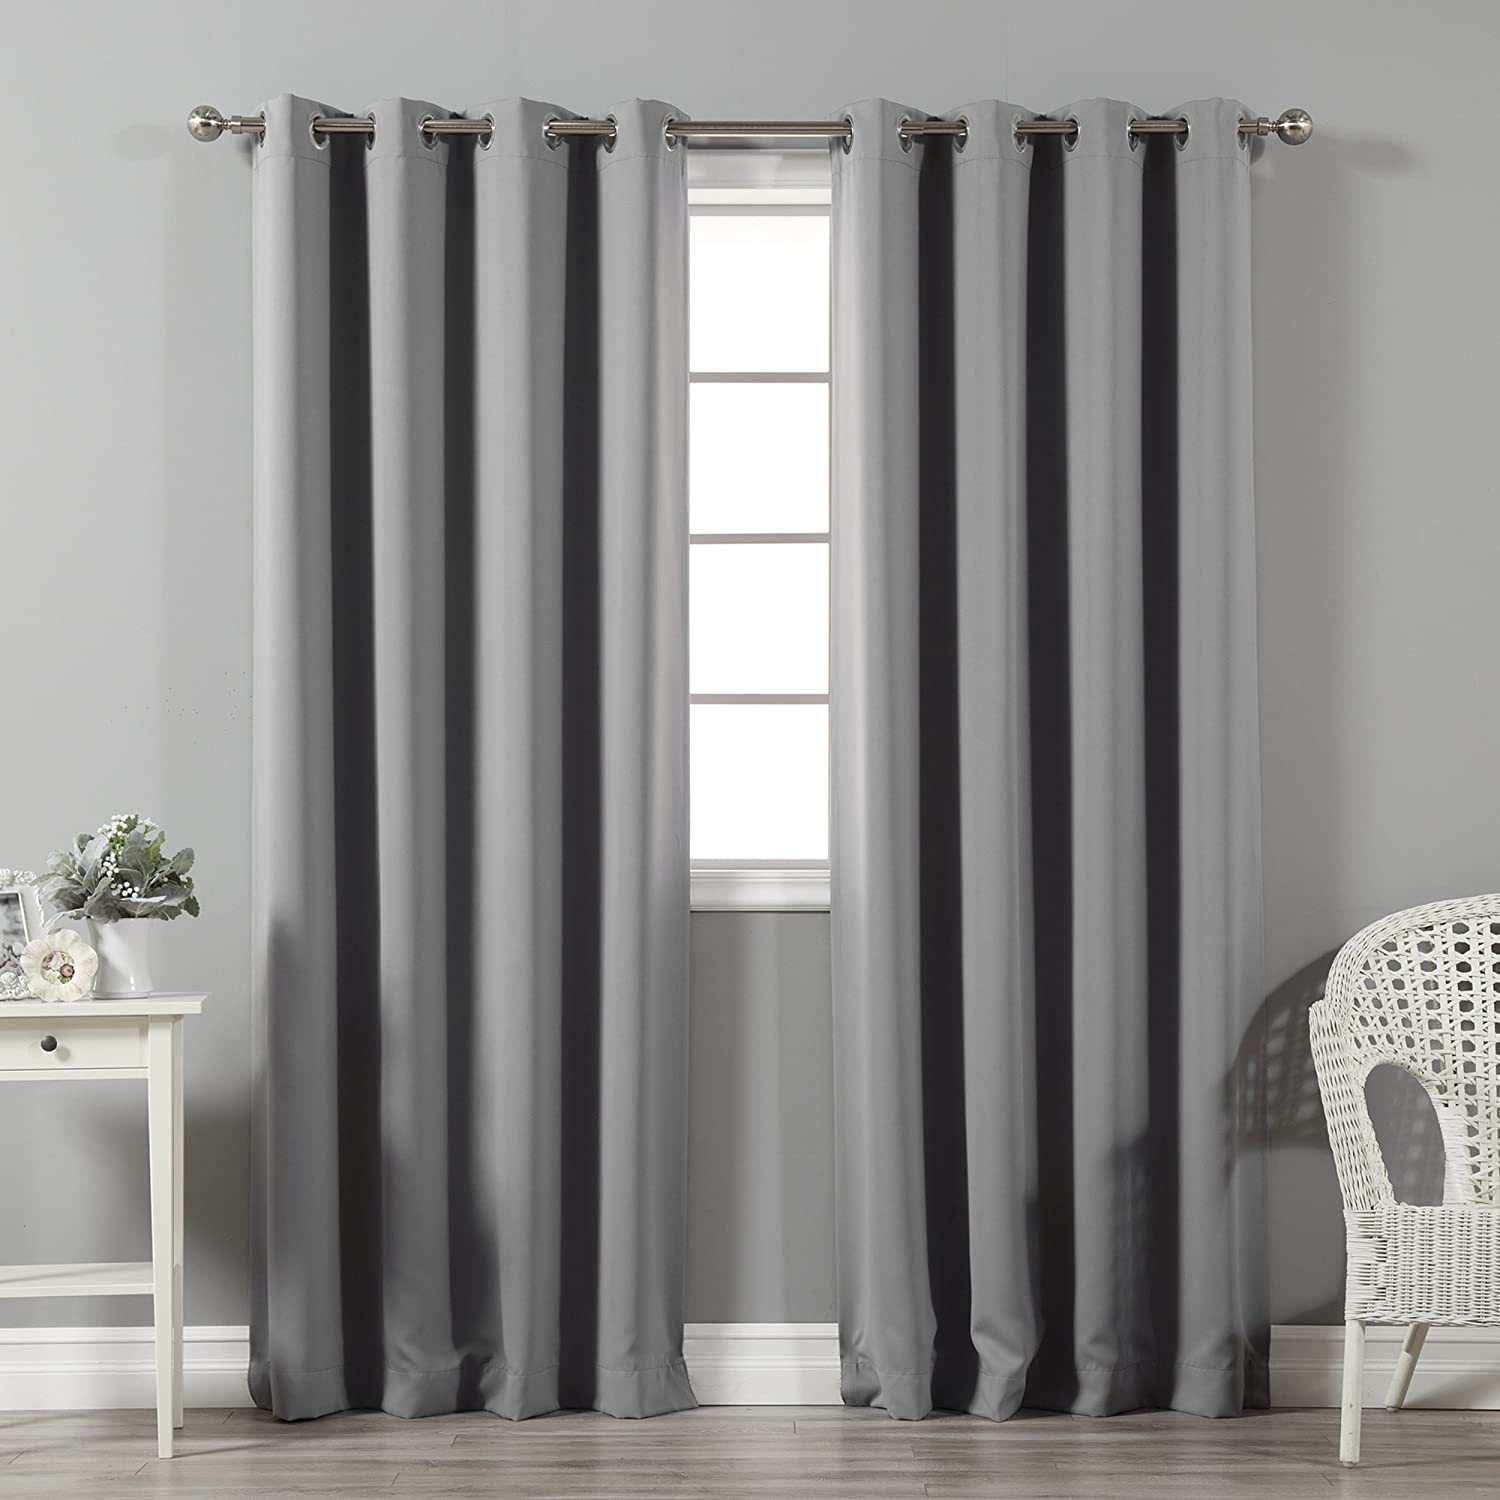 with grommetmal perfect blackout thermal ideas curtain insulated remarkable amazon curtainscurtains size girls curtains design image decorating liners full interior of remarkableins best